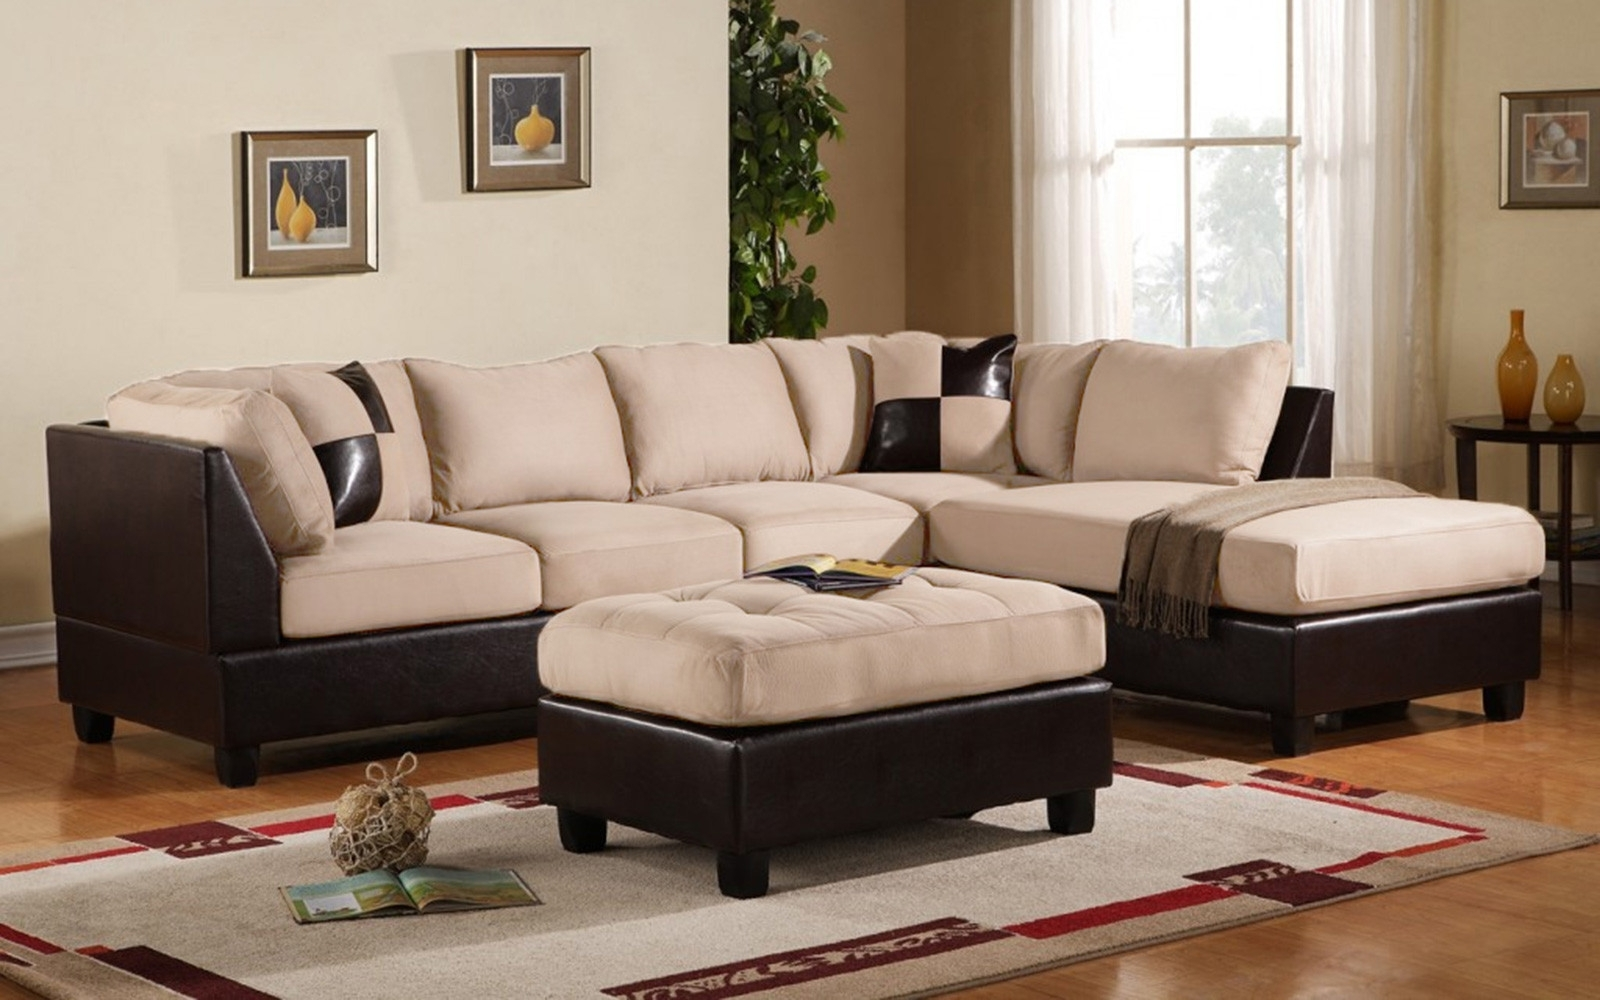 Queens Ny Sectional Sofas Throughout Latest Faux Suede Sectional Sofa – Home And Textiles (View 4 of 20)